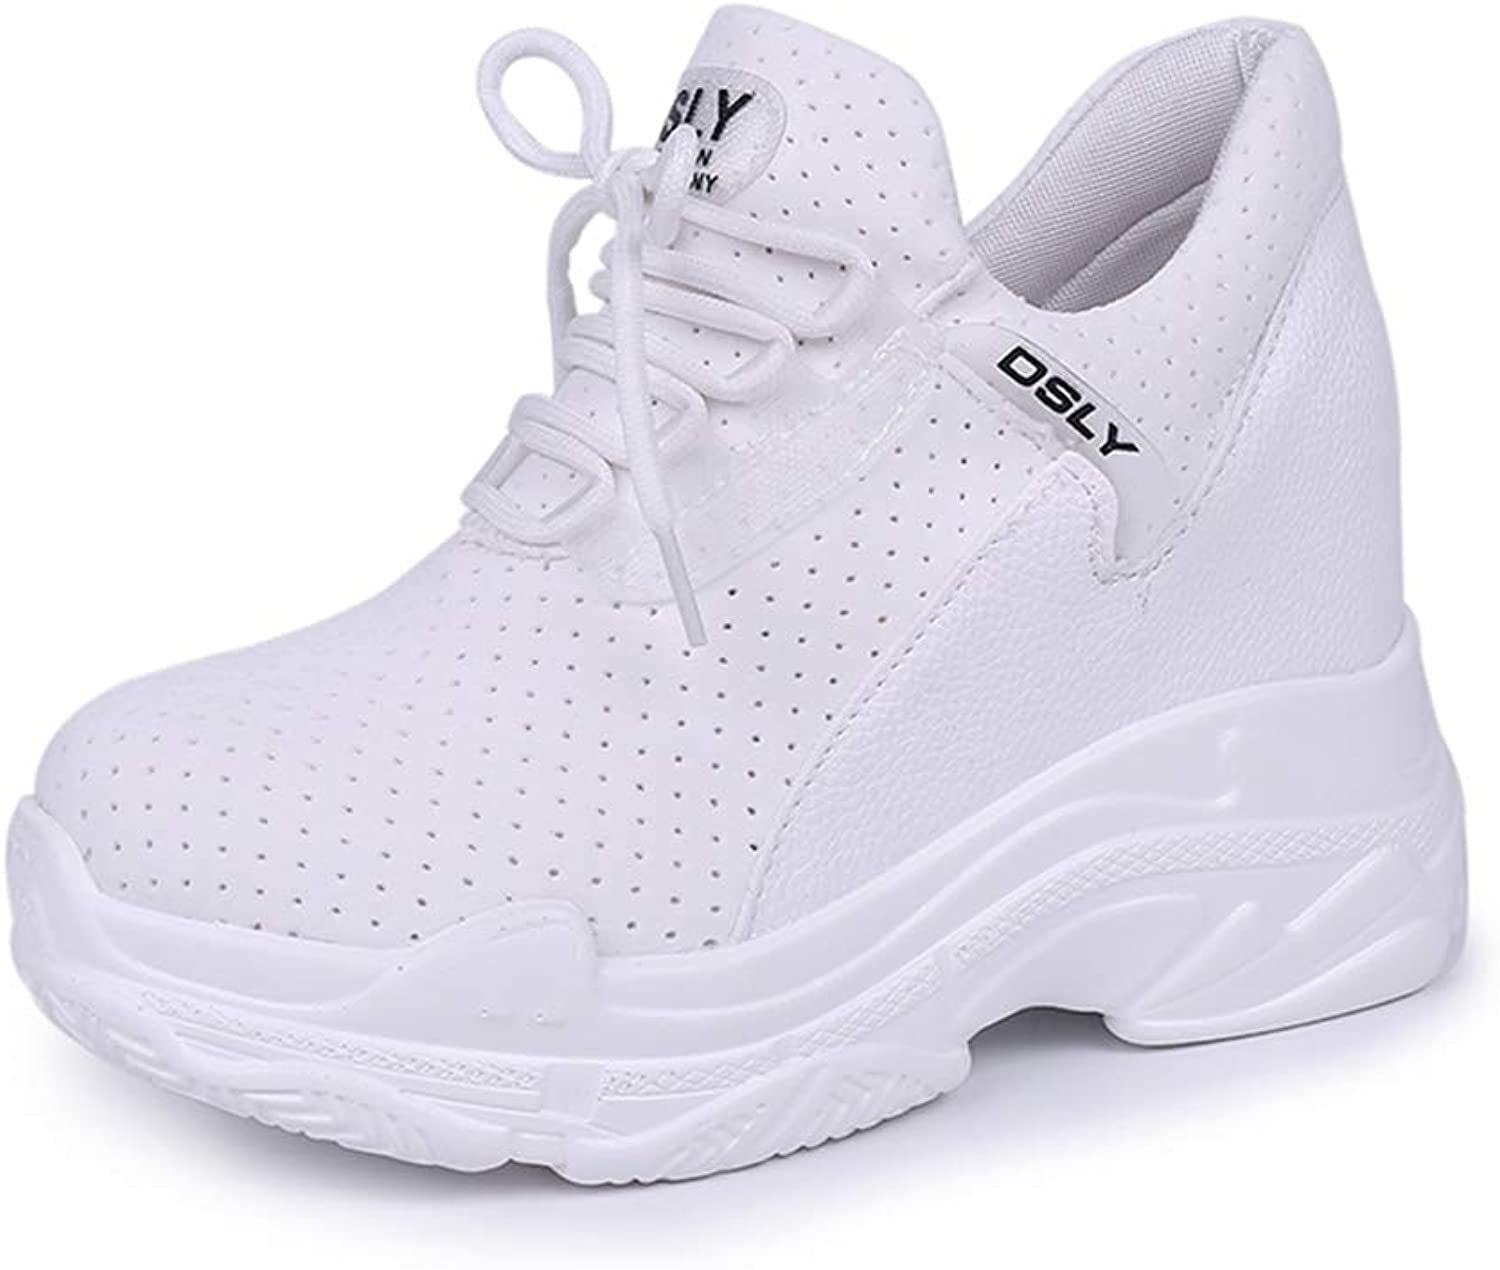 Hoxekle High Platform Wedge Sneakers Women Breathable Mesh Air Height Increasing Casual shoes Woman Ladies White Trainers